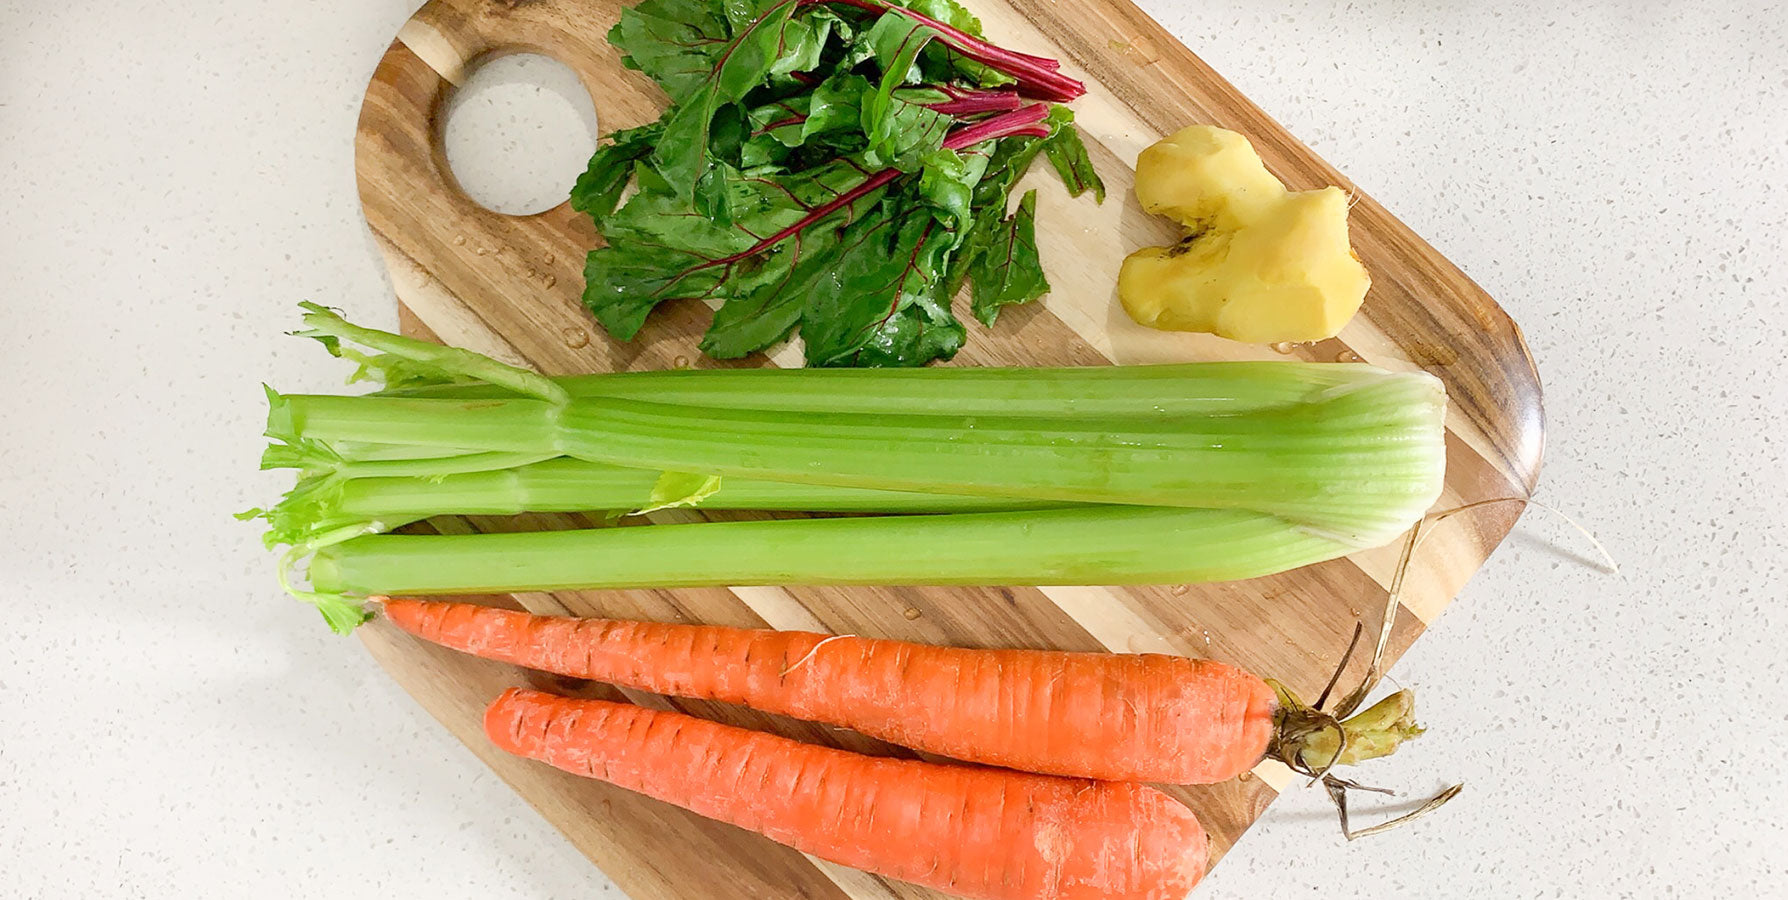 ingredients for juicing recipe